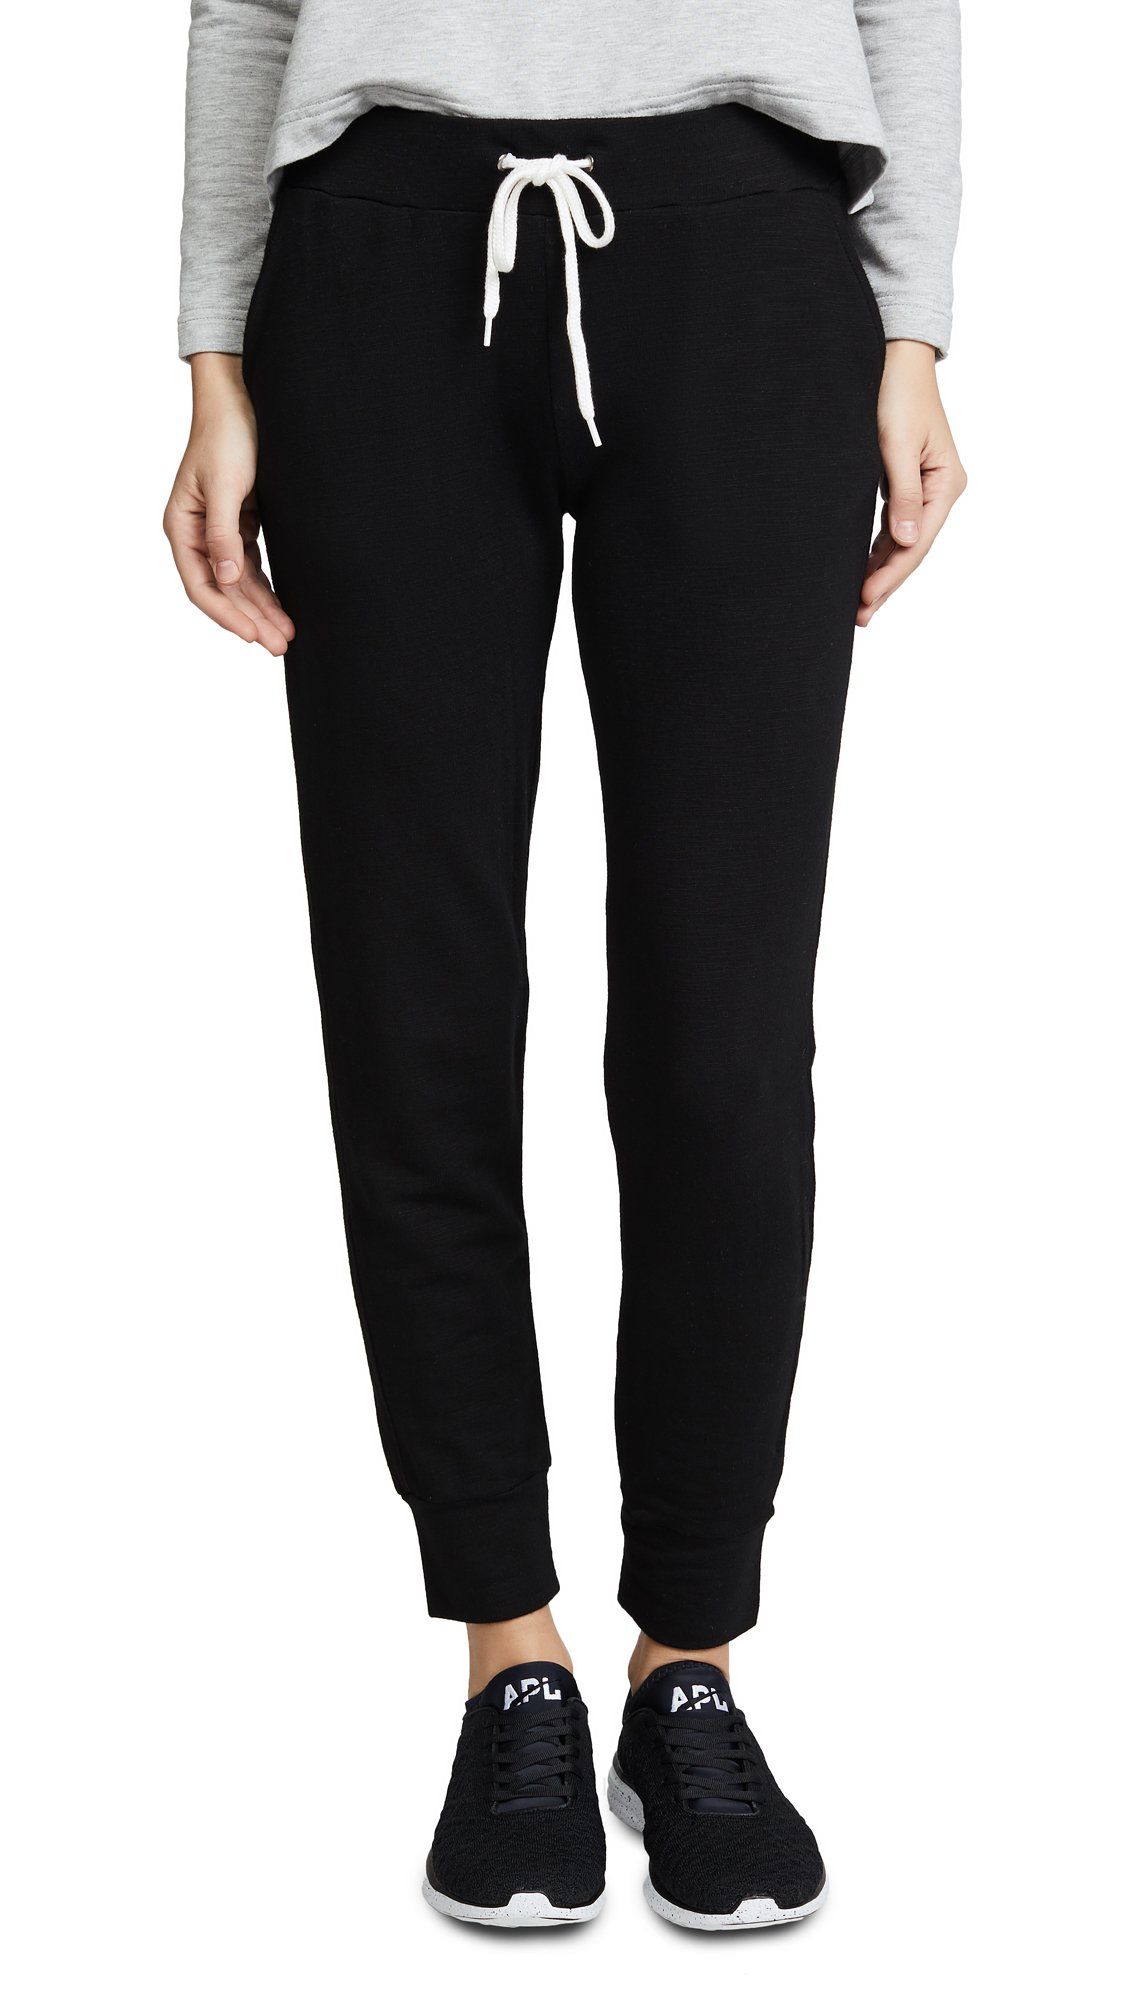 Monrow Women's Super Soft Sporty Sweatpants, Black, Medium